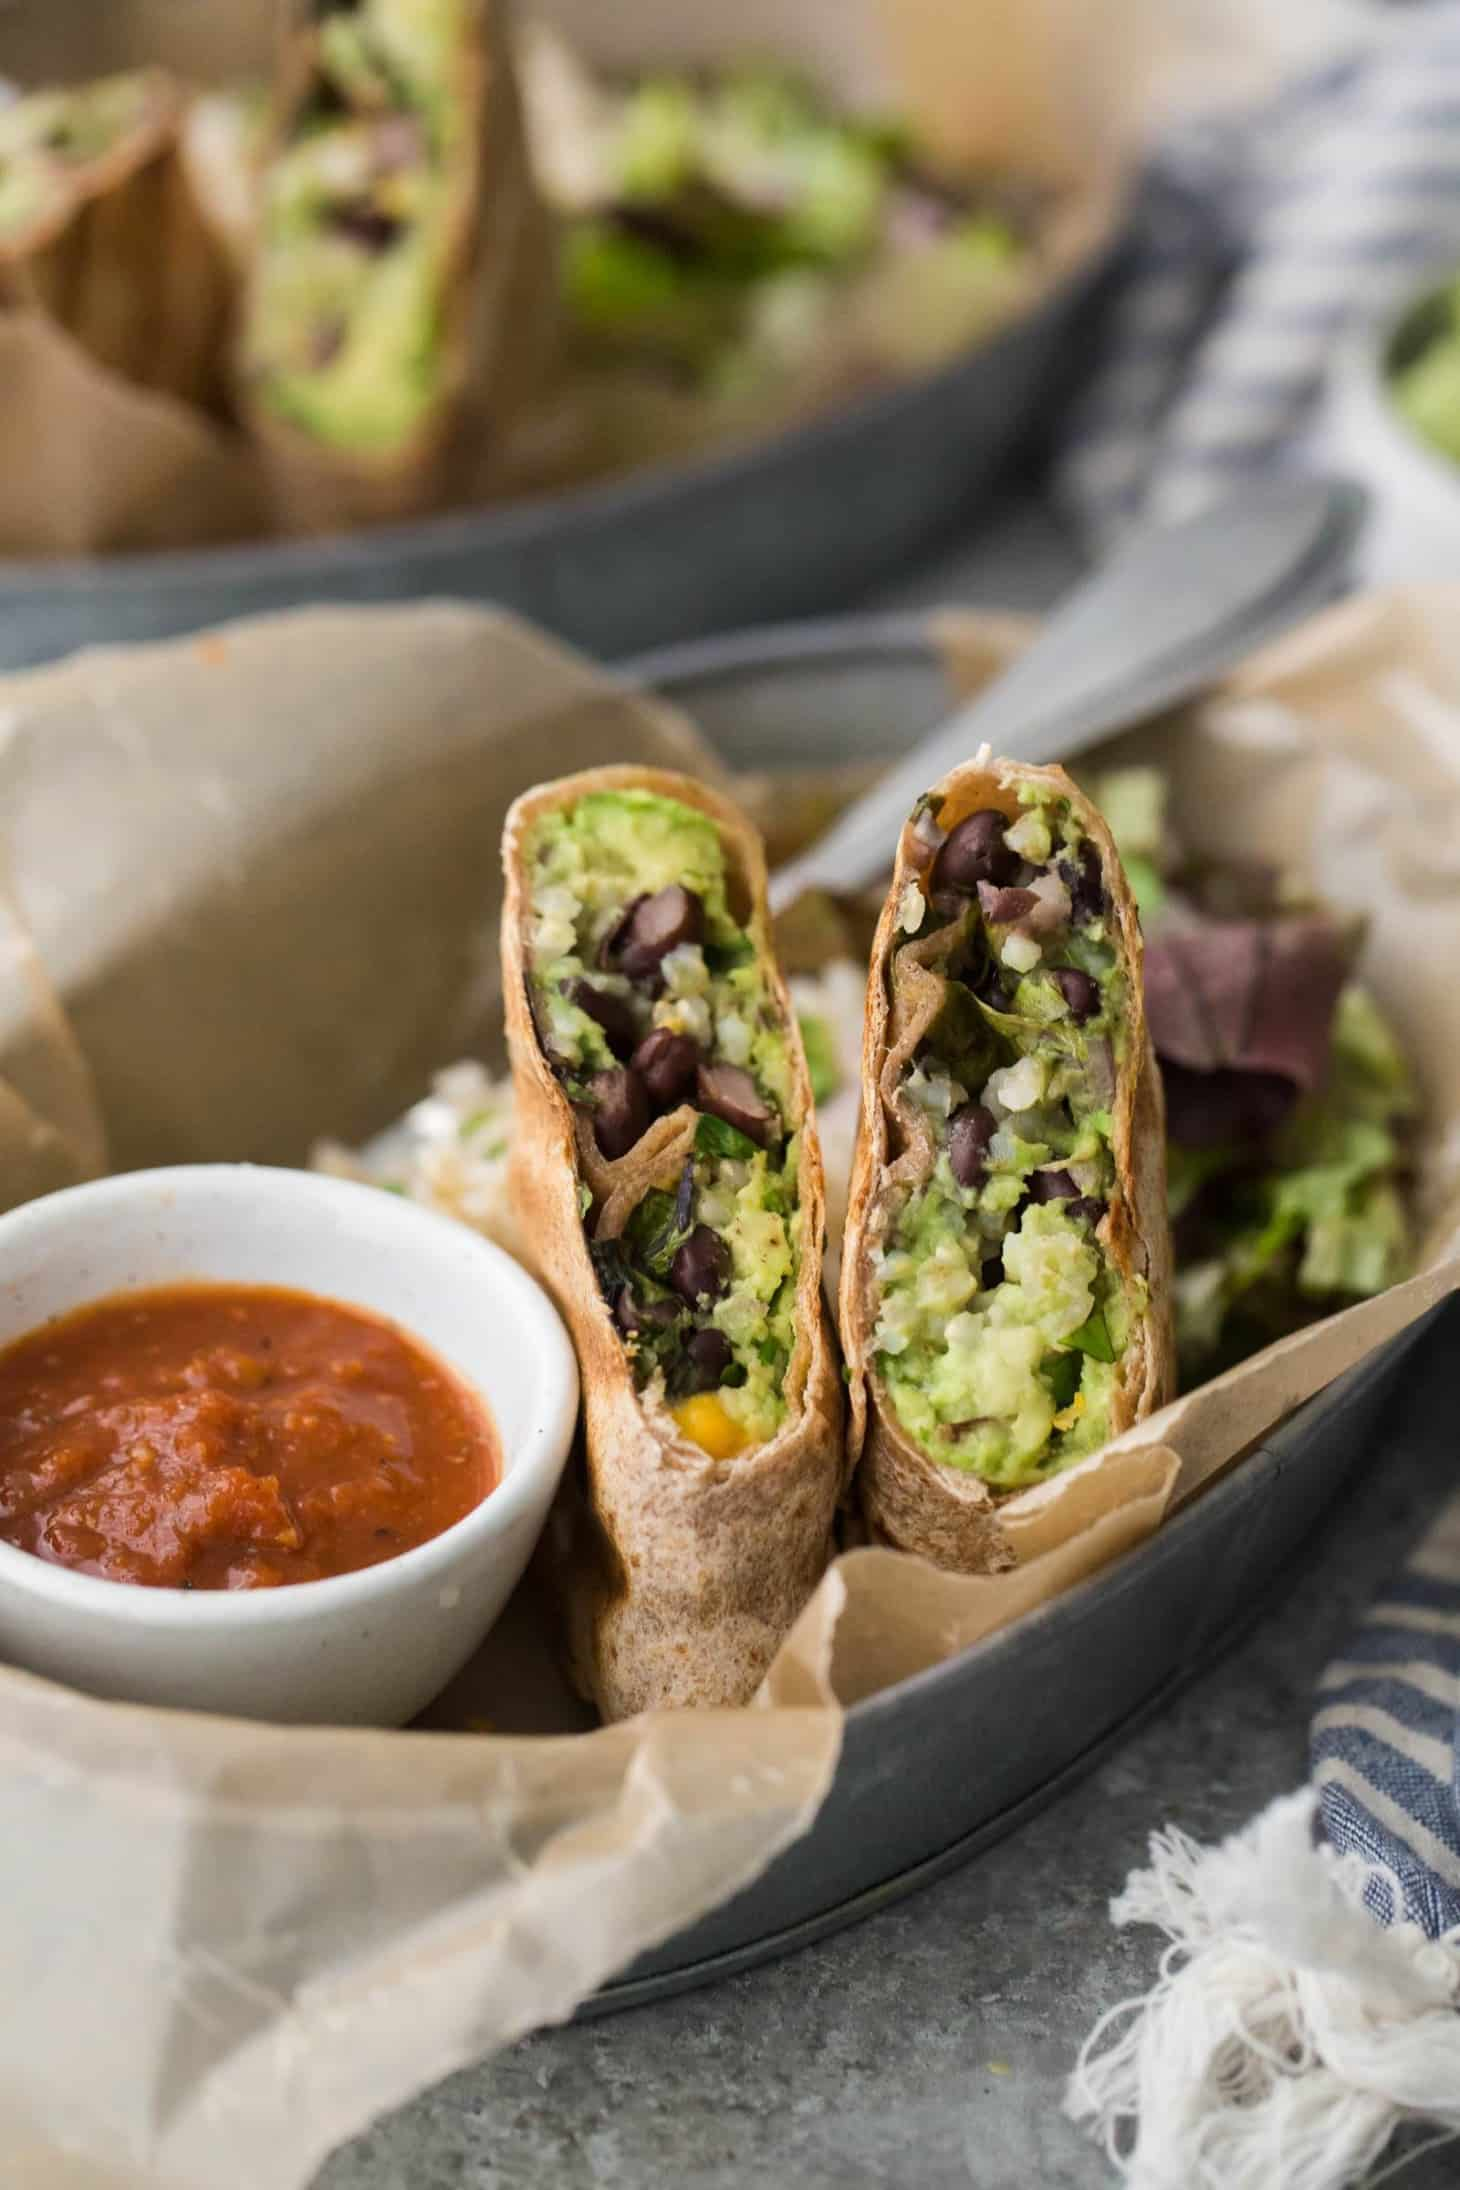 Black Bean Burrito with Guacamole | @naturallyella